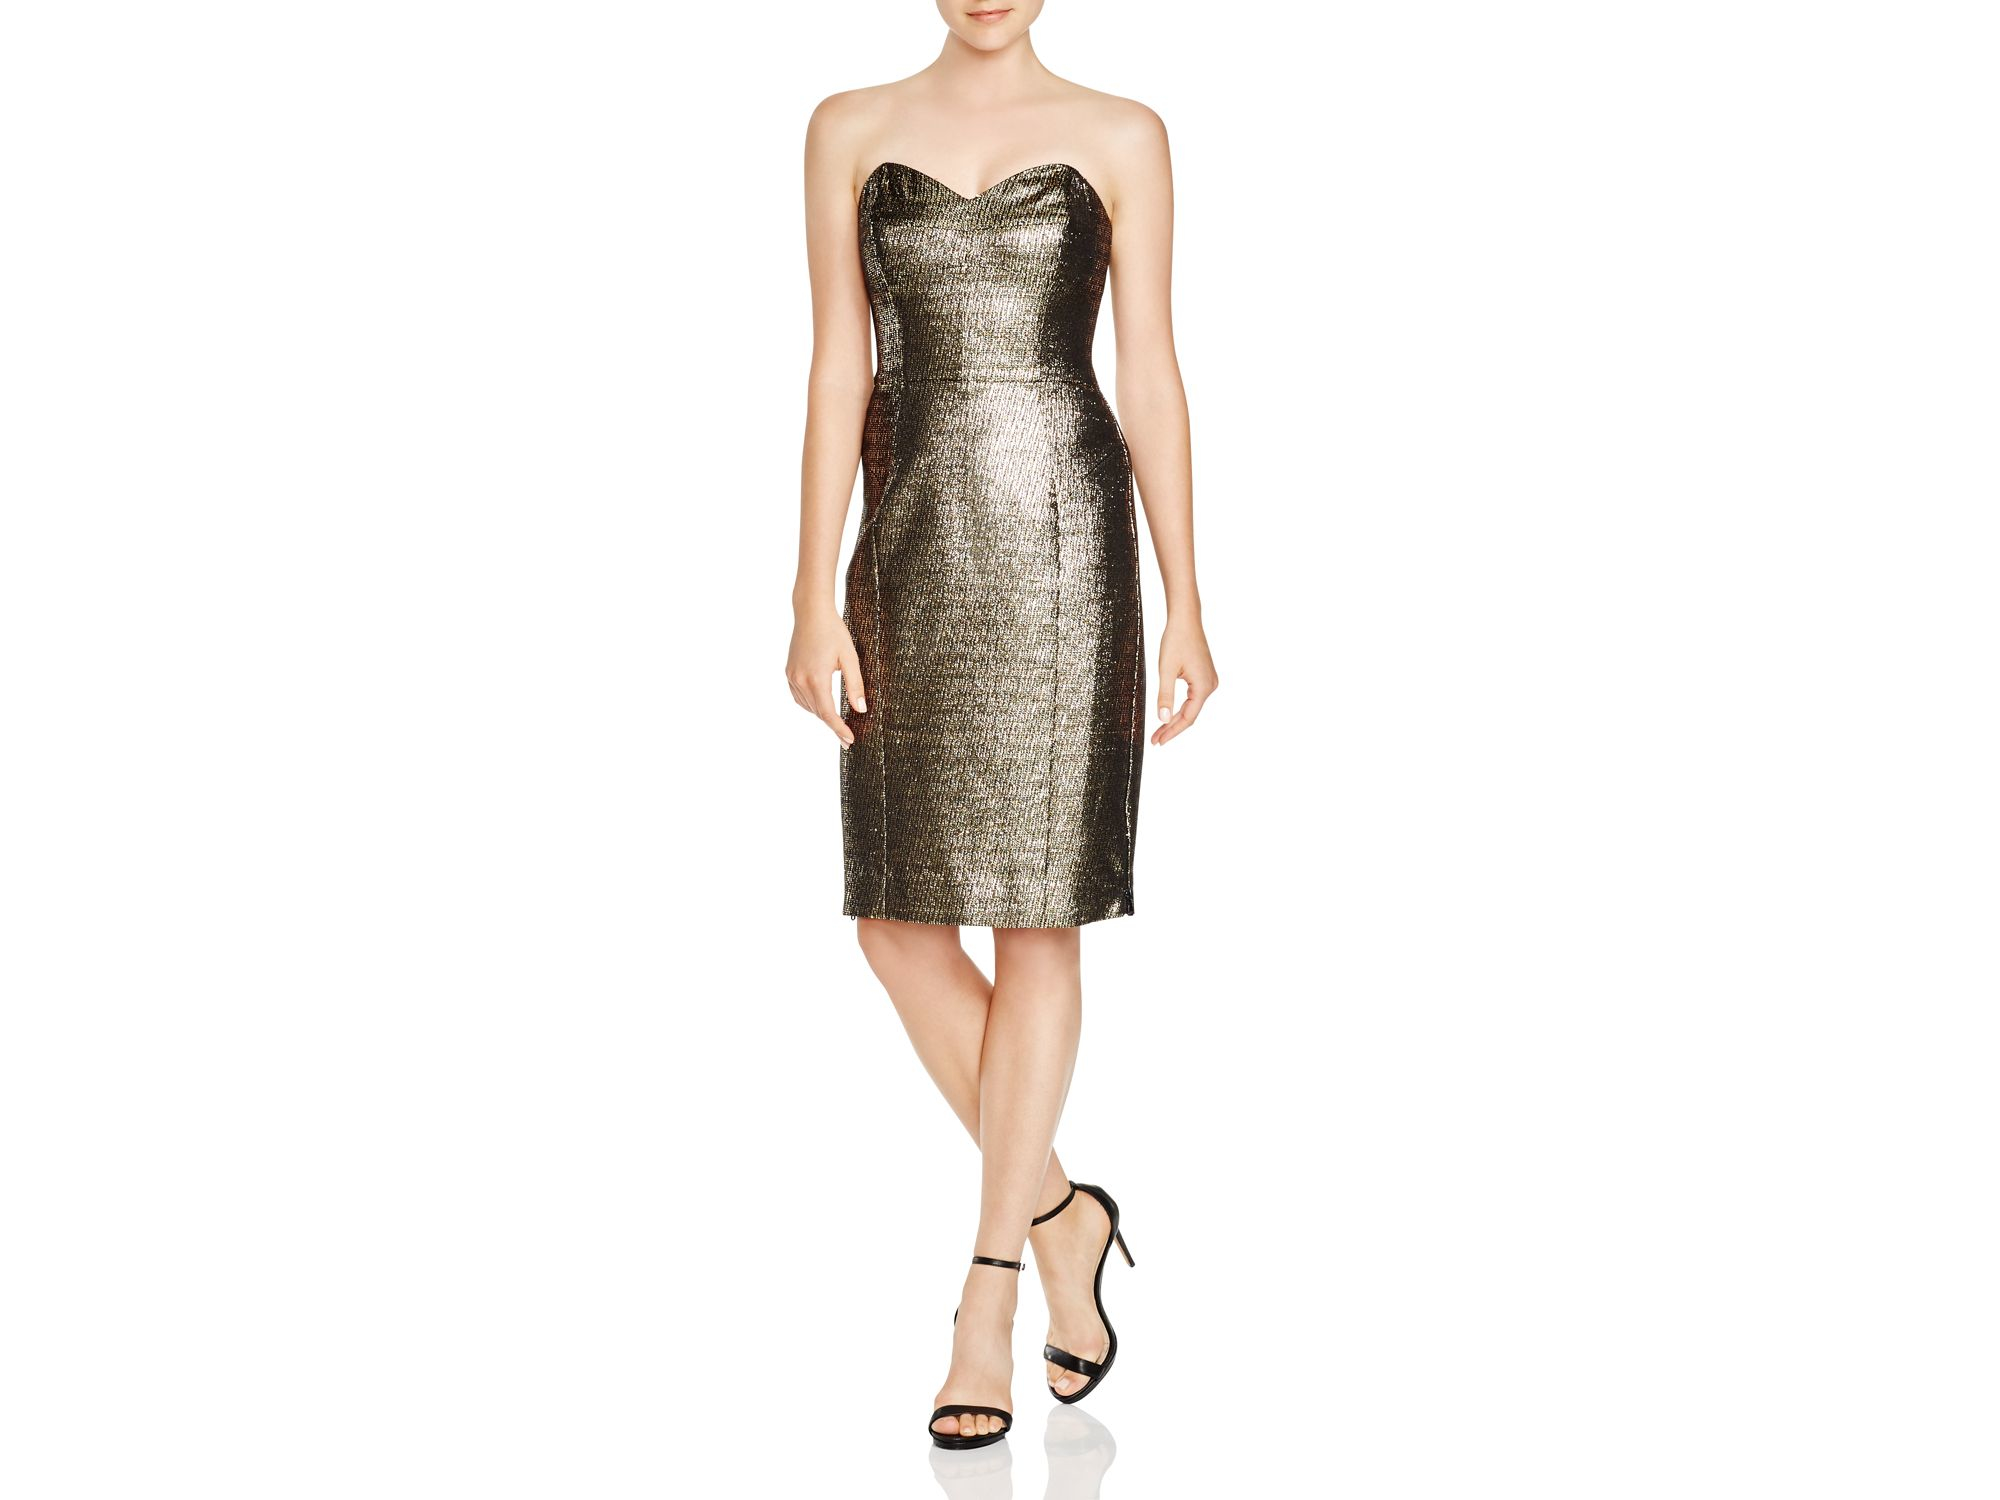 32cdd8fc40a8 Milly Couture Metallic Marta Strapless Dress in Metallic - Lyst